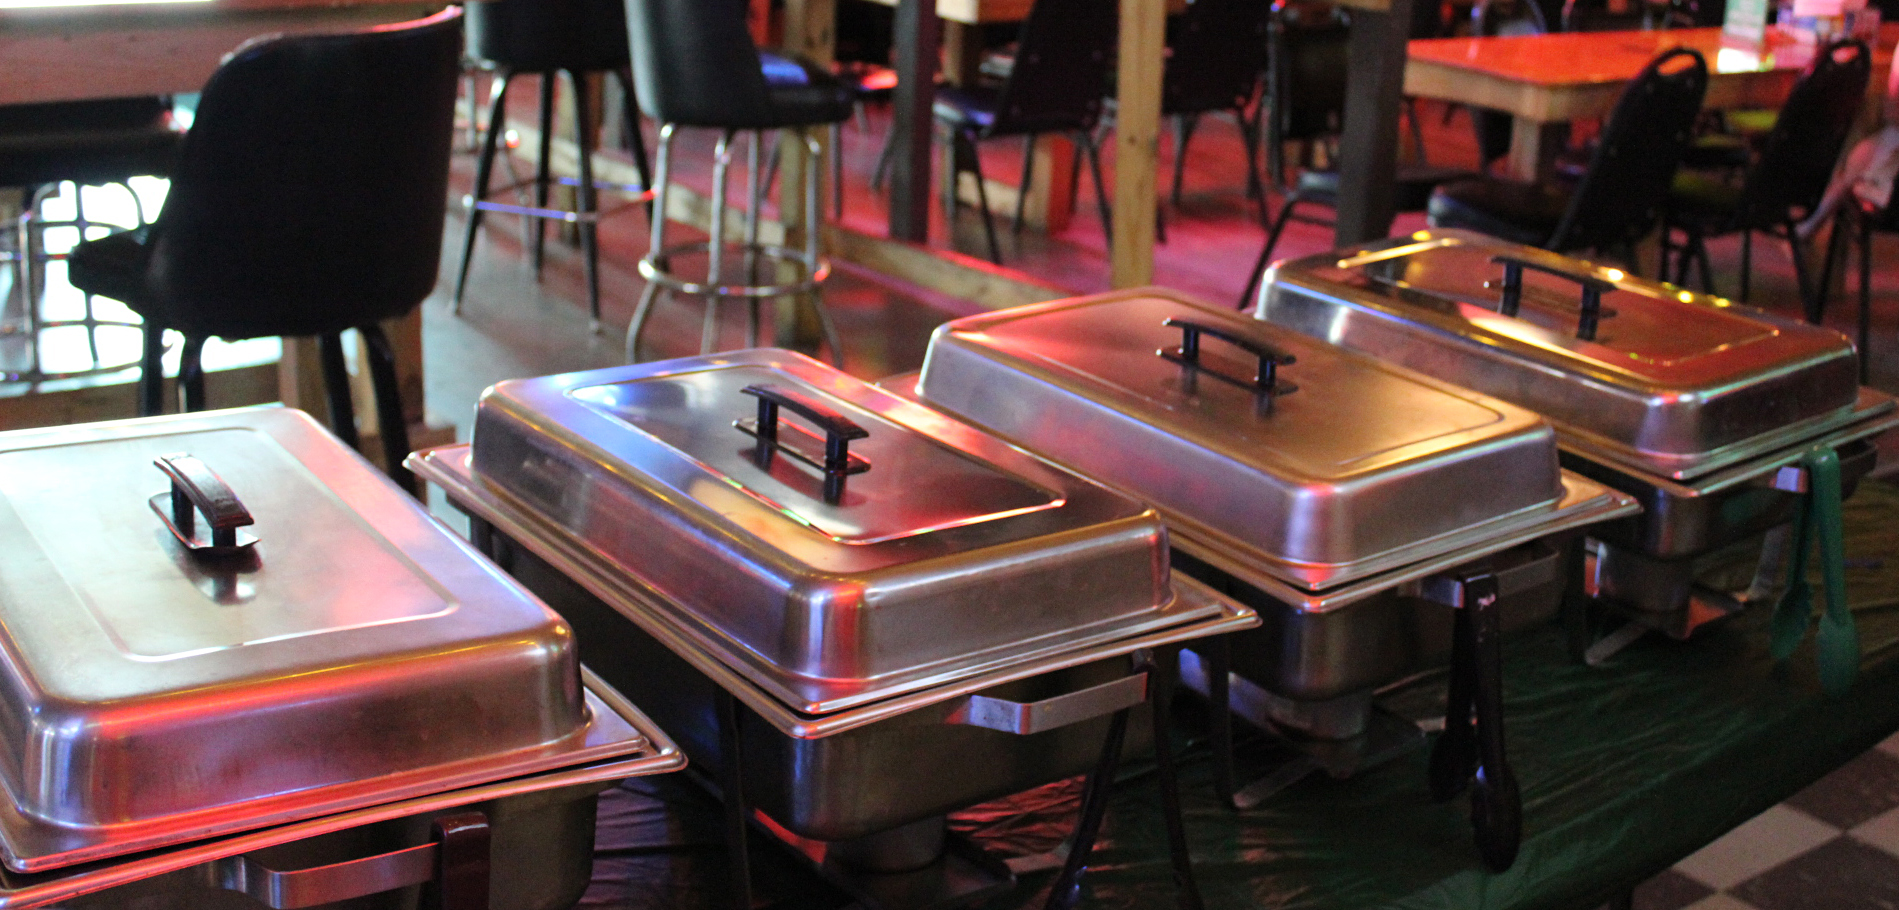 Picture of trays for food